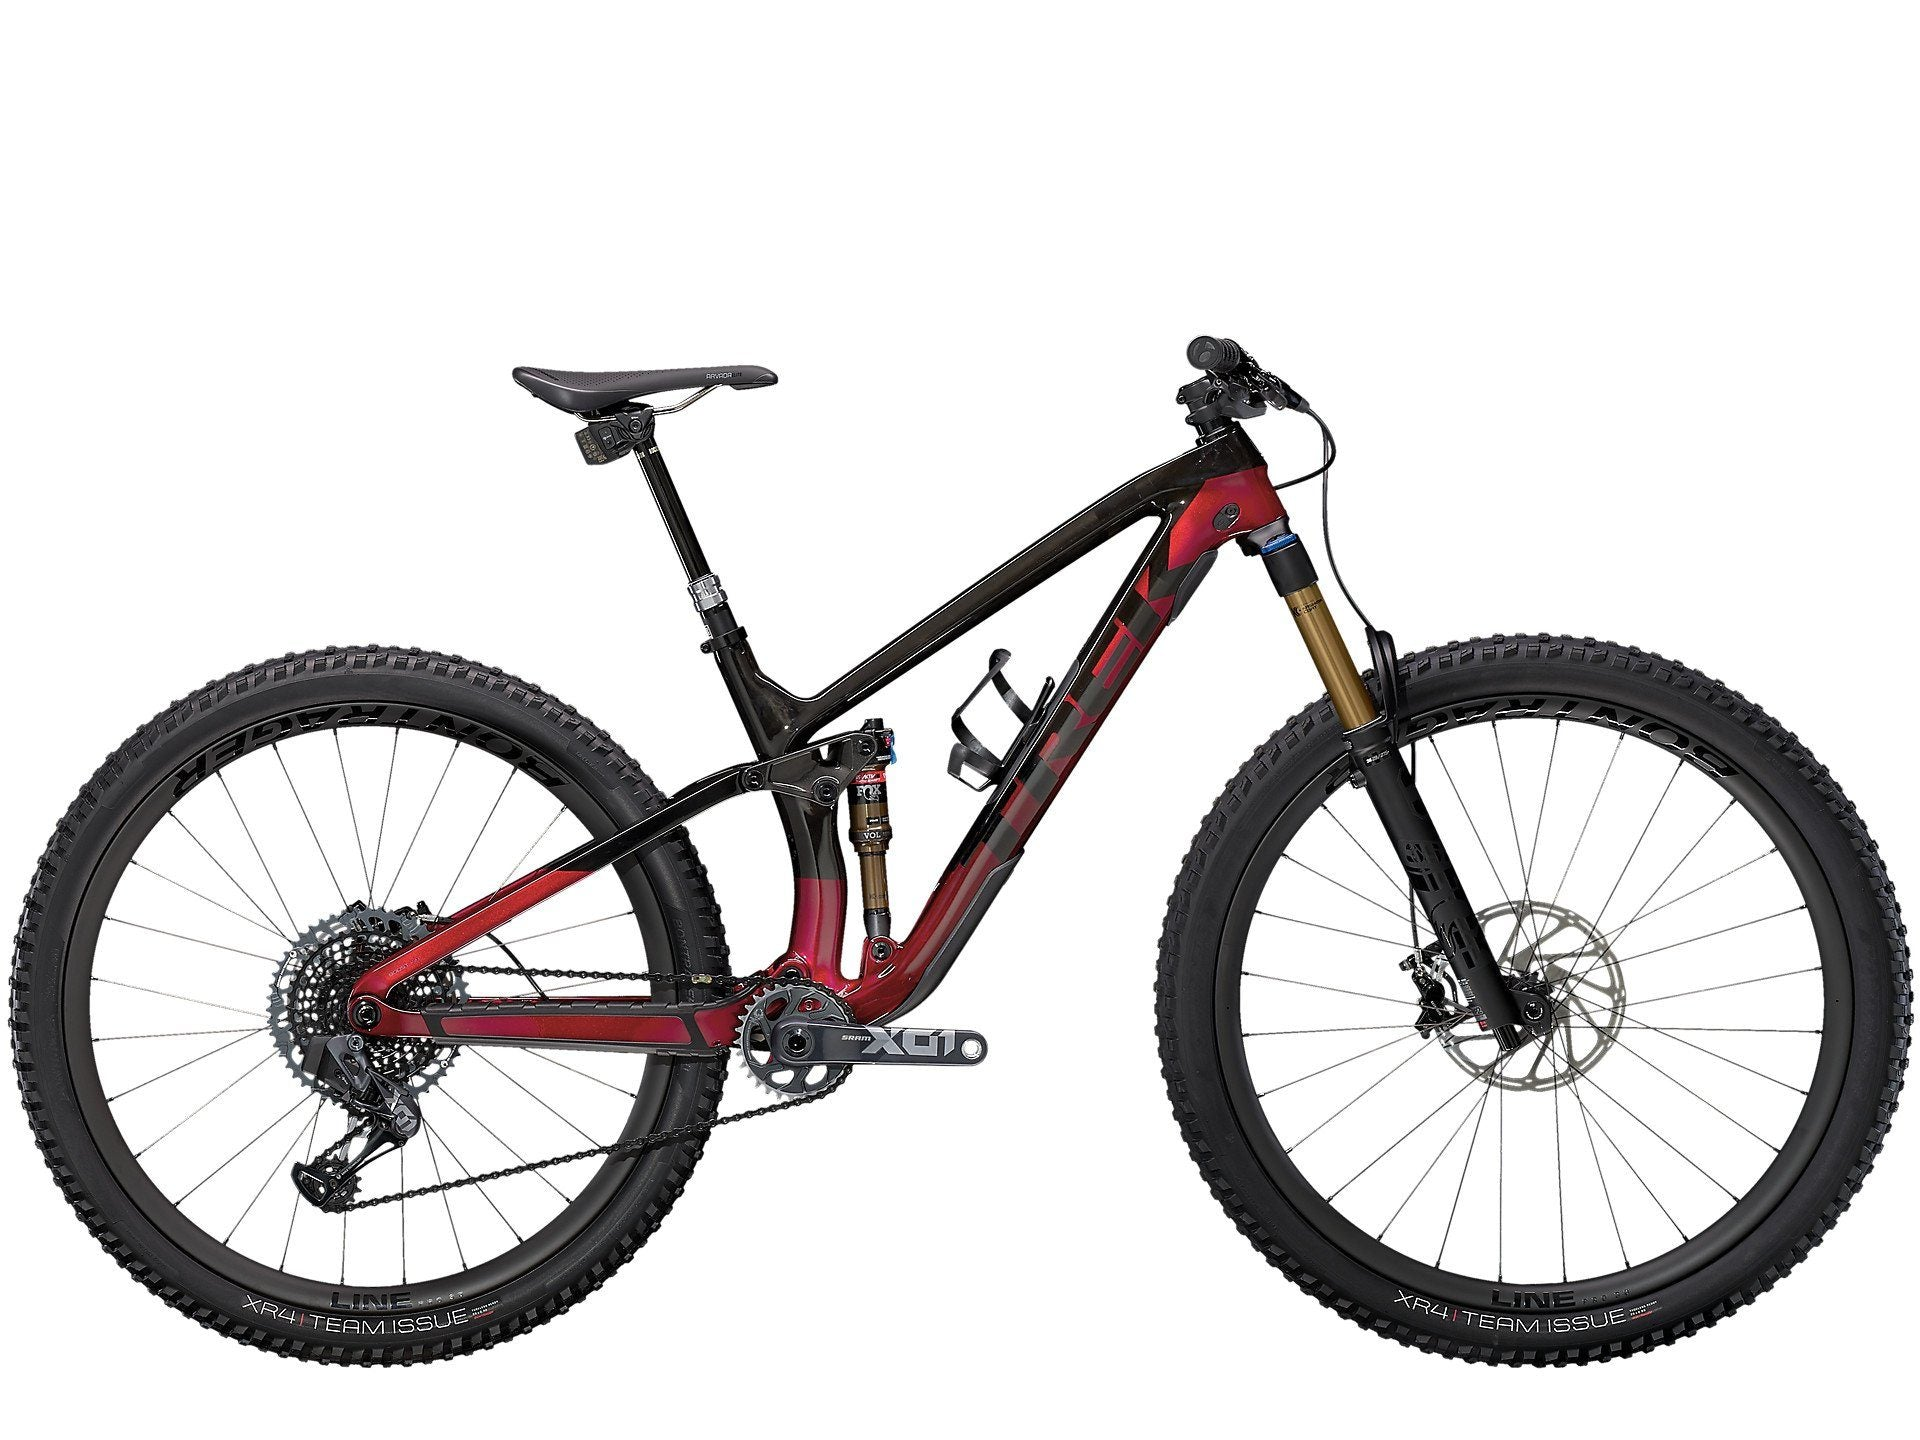 Trek Fuel EX 9.9 X01 AXS 2021 - Cycles Galleria Melbourne